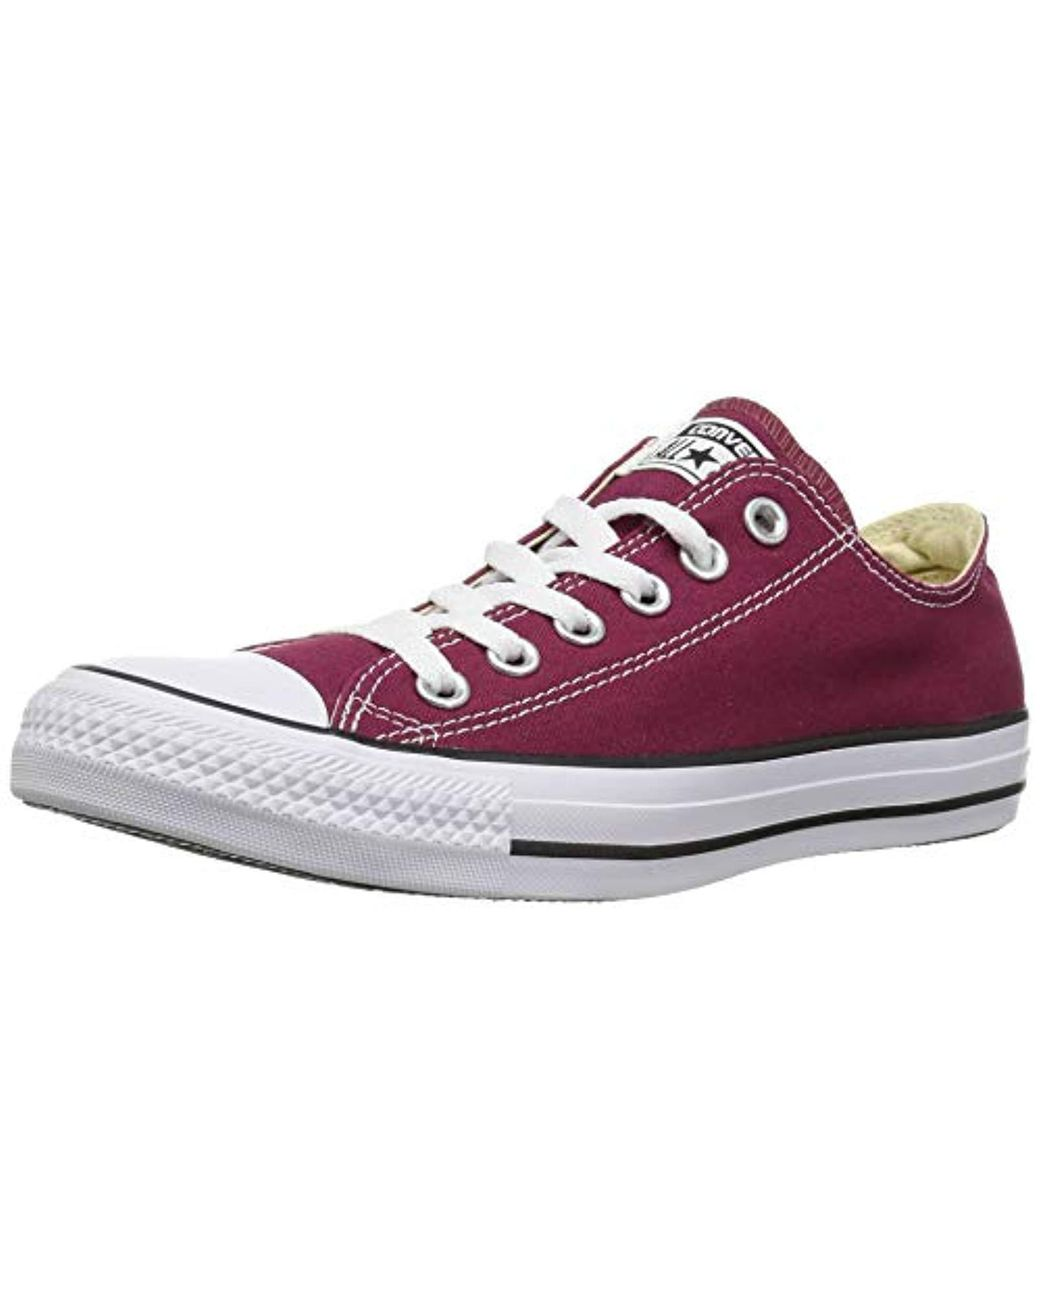 00d5a4a0966a Converse. Red Unisex Adult Chuck Taylor All Star Adult Seasonal Ox Trainers